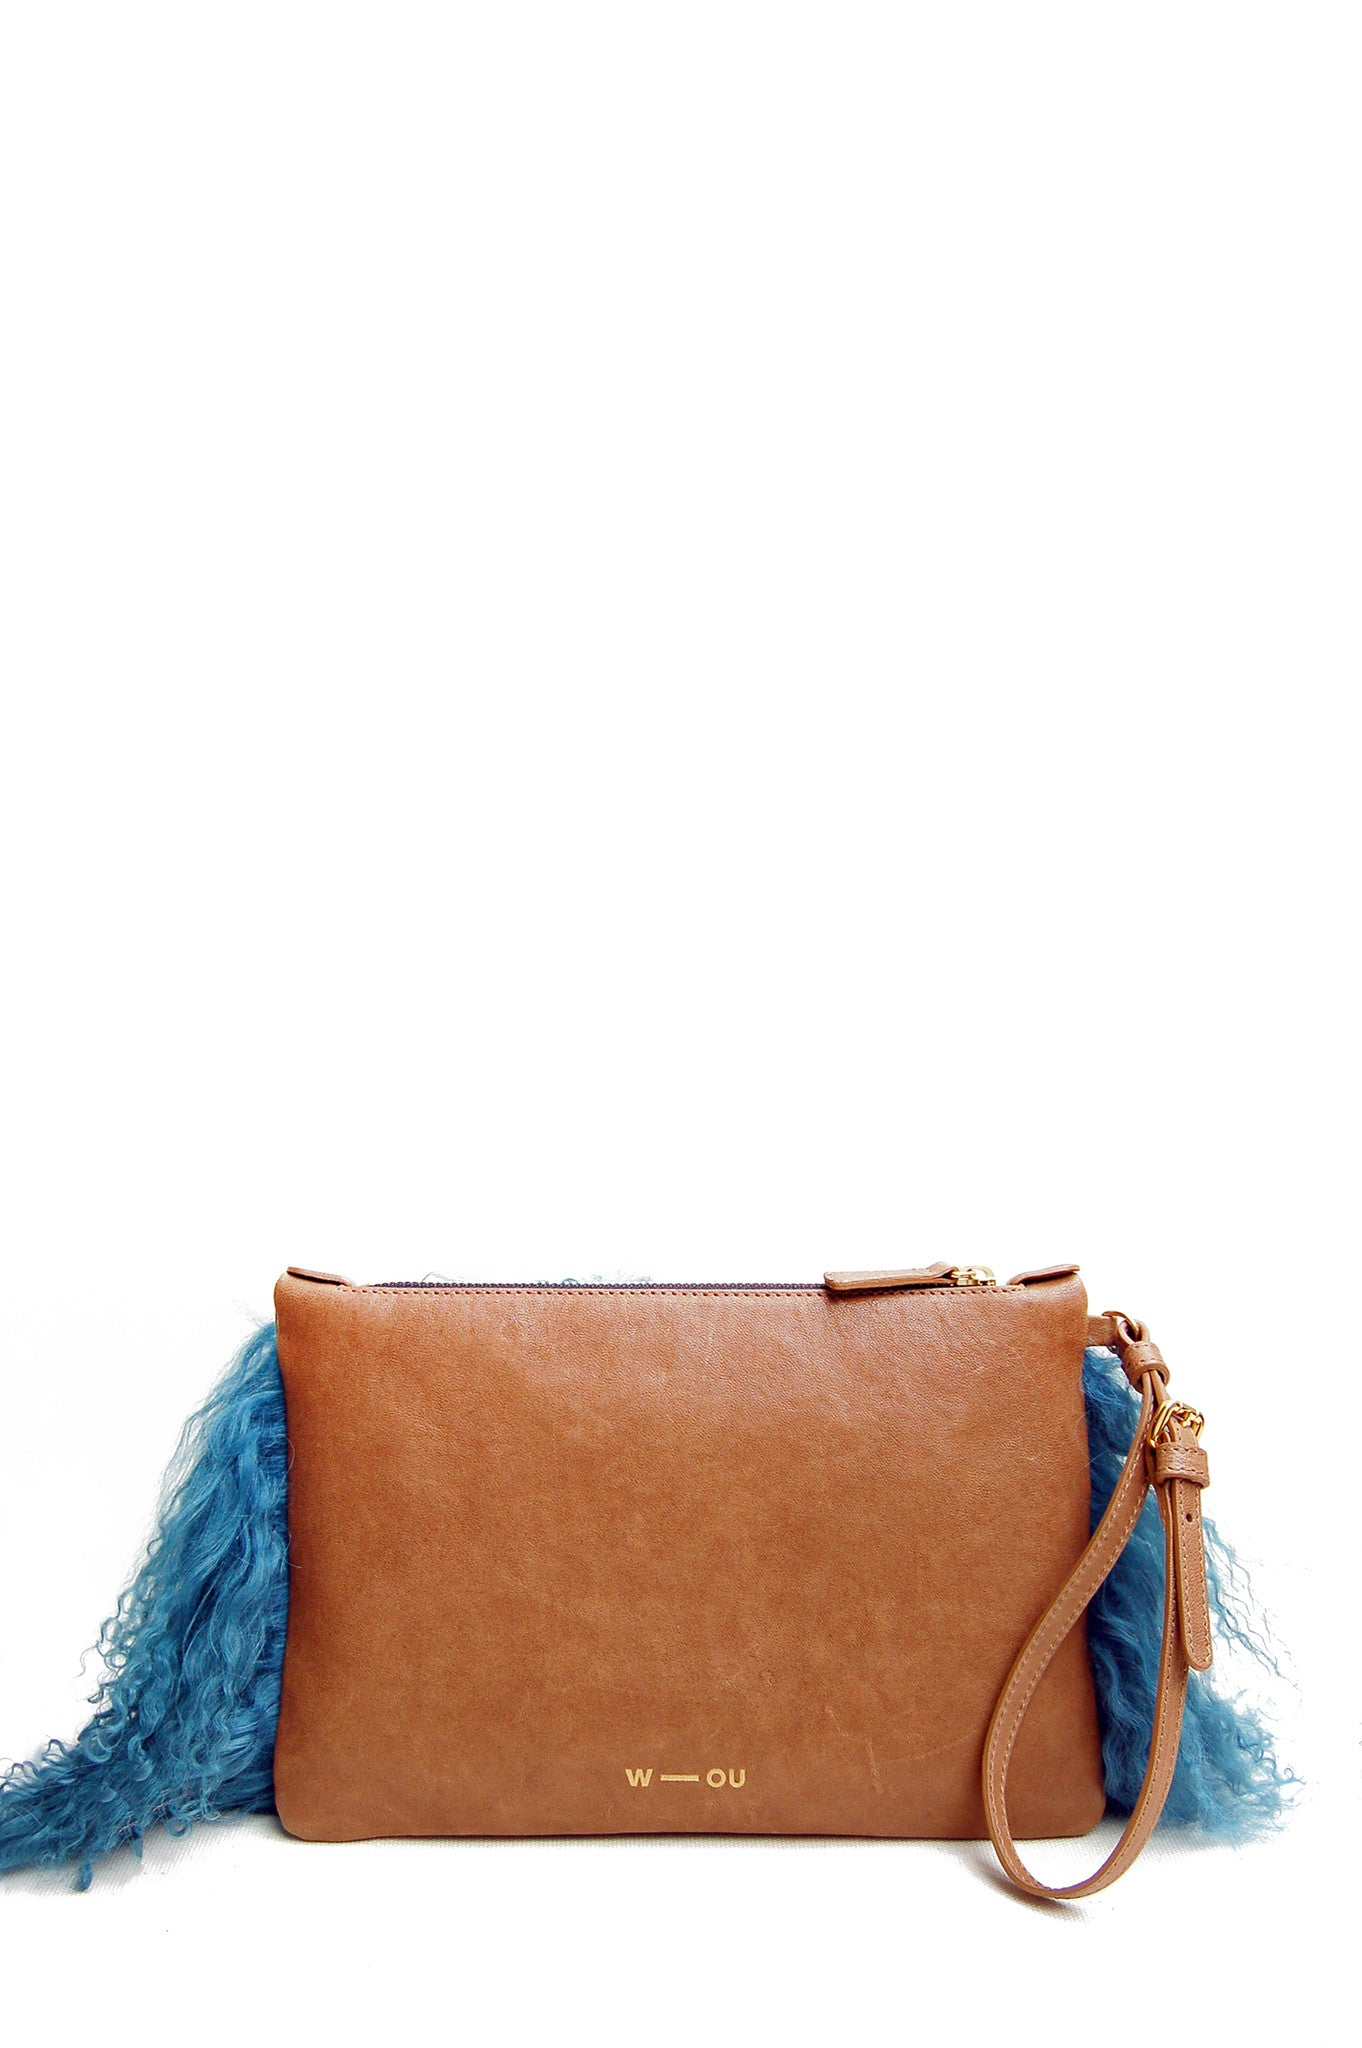 Wendee Ou: Florence clutch bag tan & turquoise fur | Bags,Bags > Clutches -  Hiphunters Shop